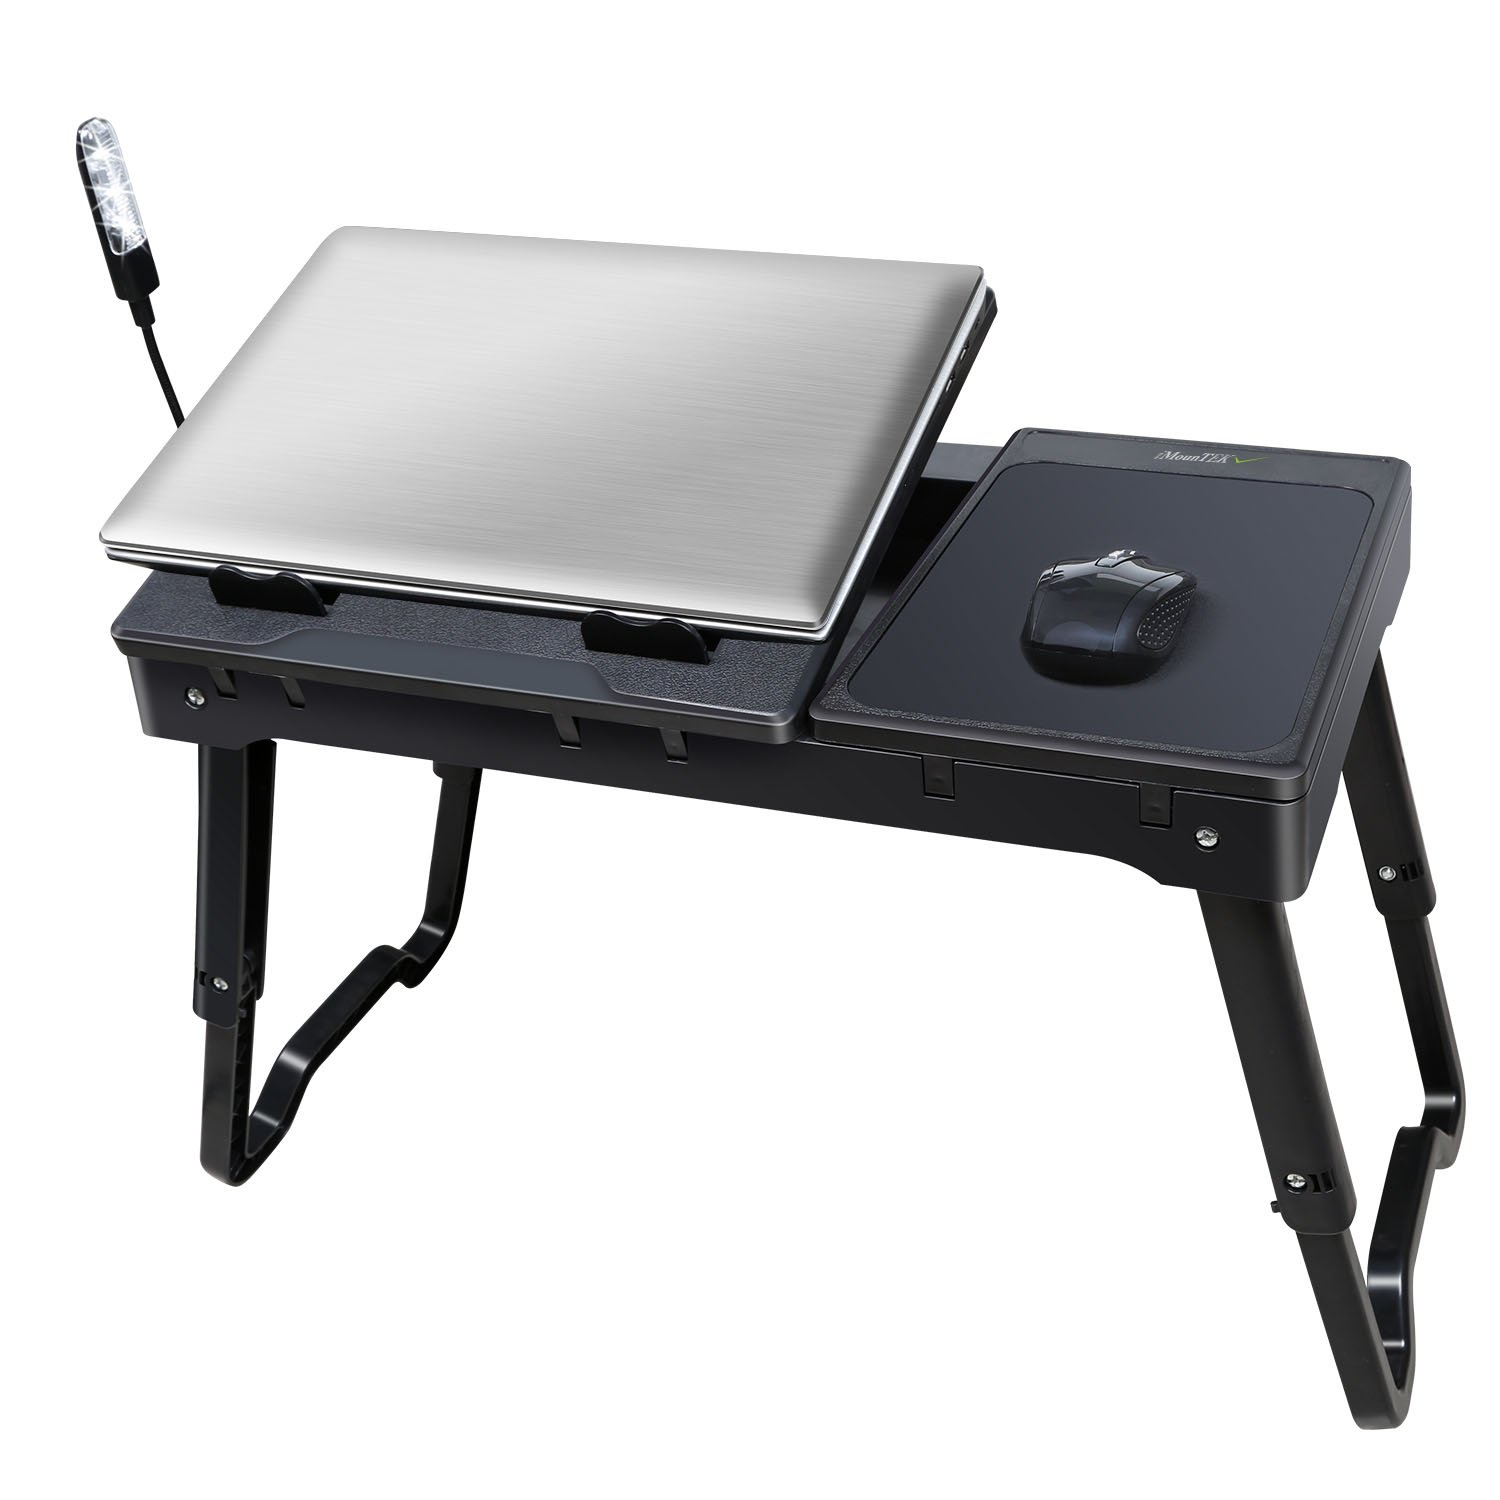 save table notebook pc stand usd tray products laptop deals adjustable degree unique portable bed folding desk buy